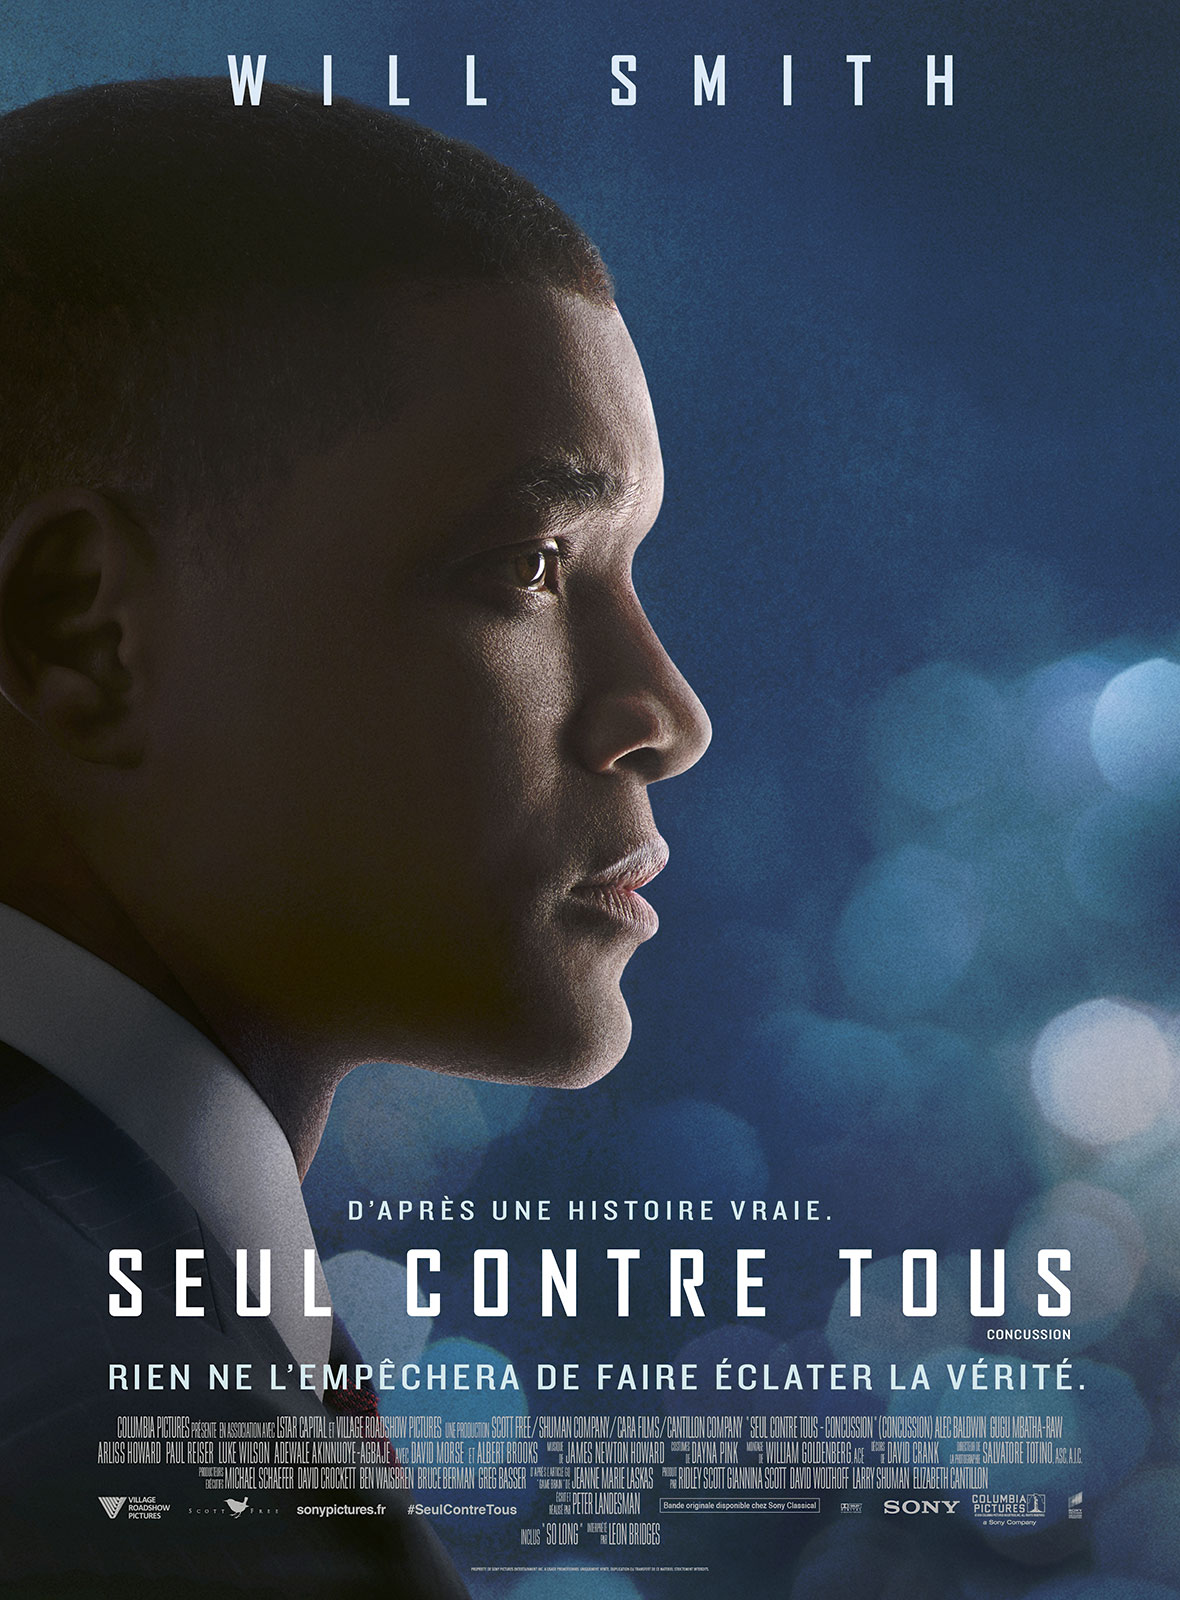 SEUL CONTRE TOUS (CONCUSSION)en streaming